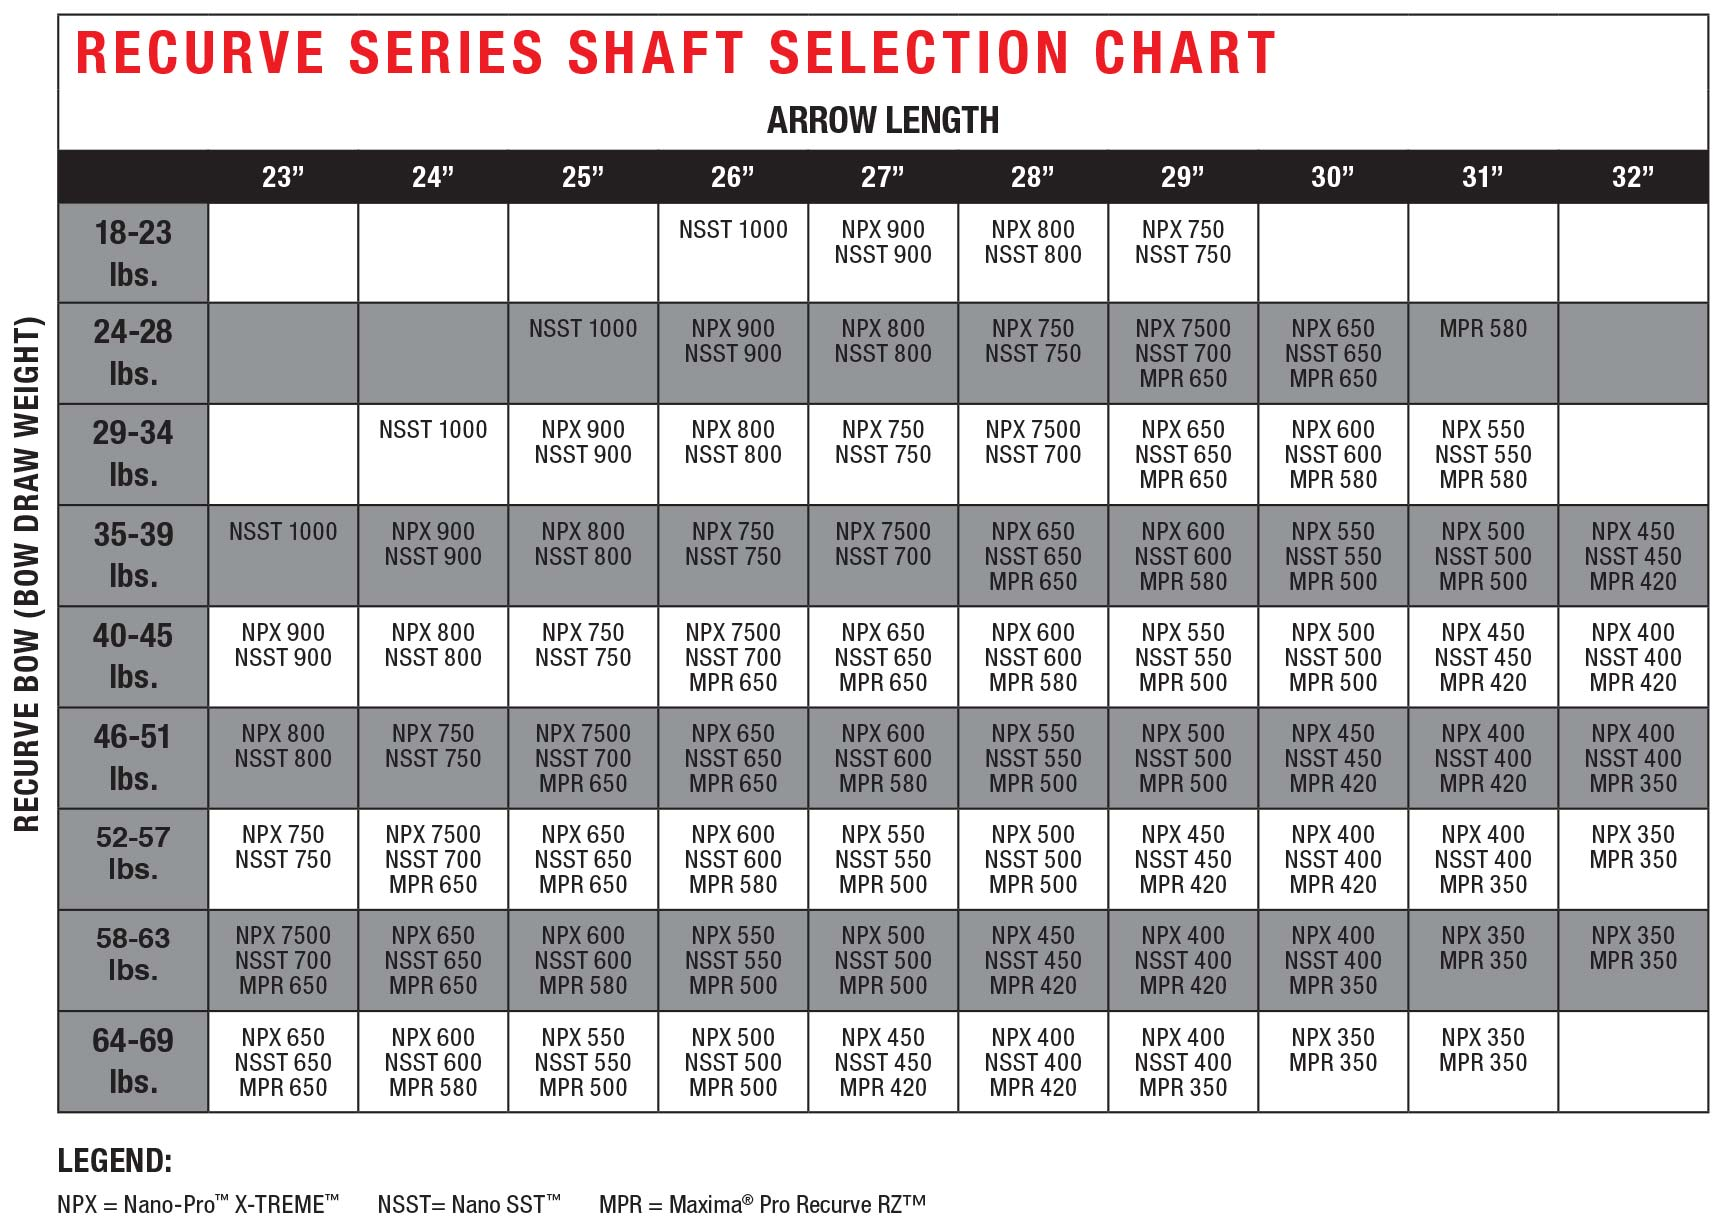 recurve-series-arrow-selection-chart.jpg